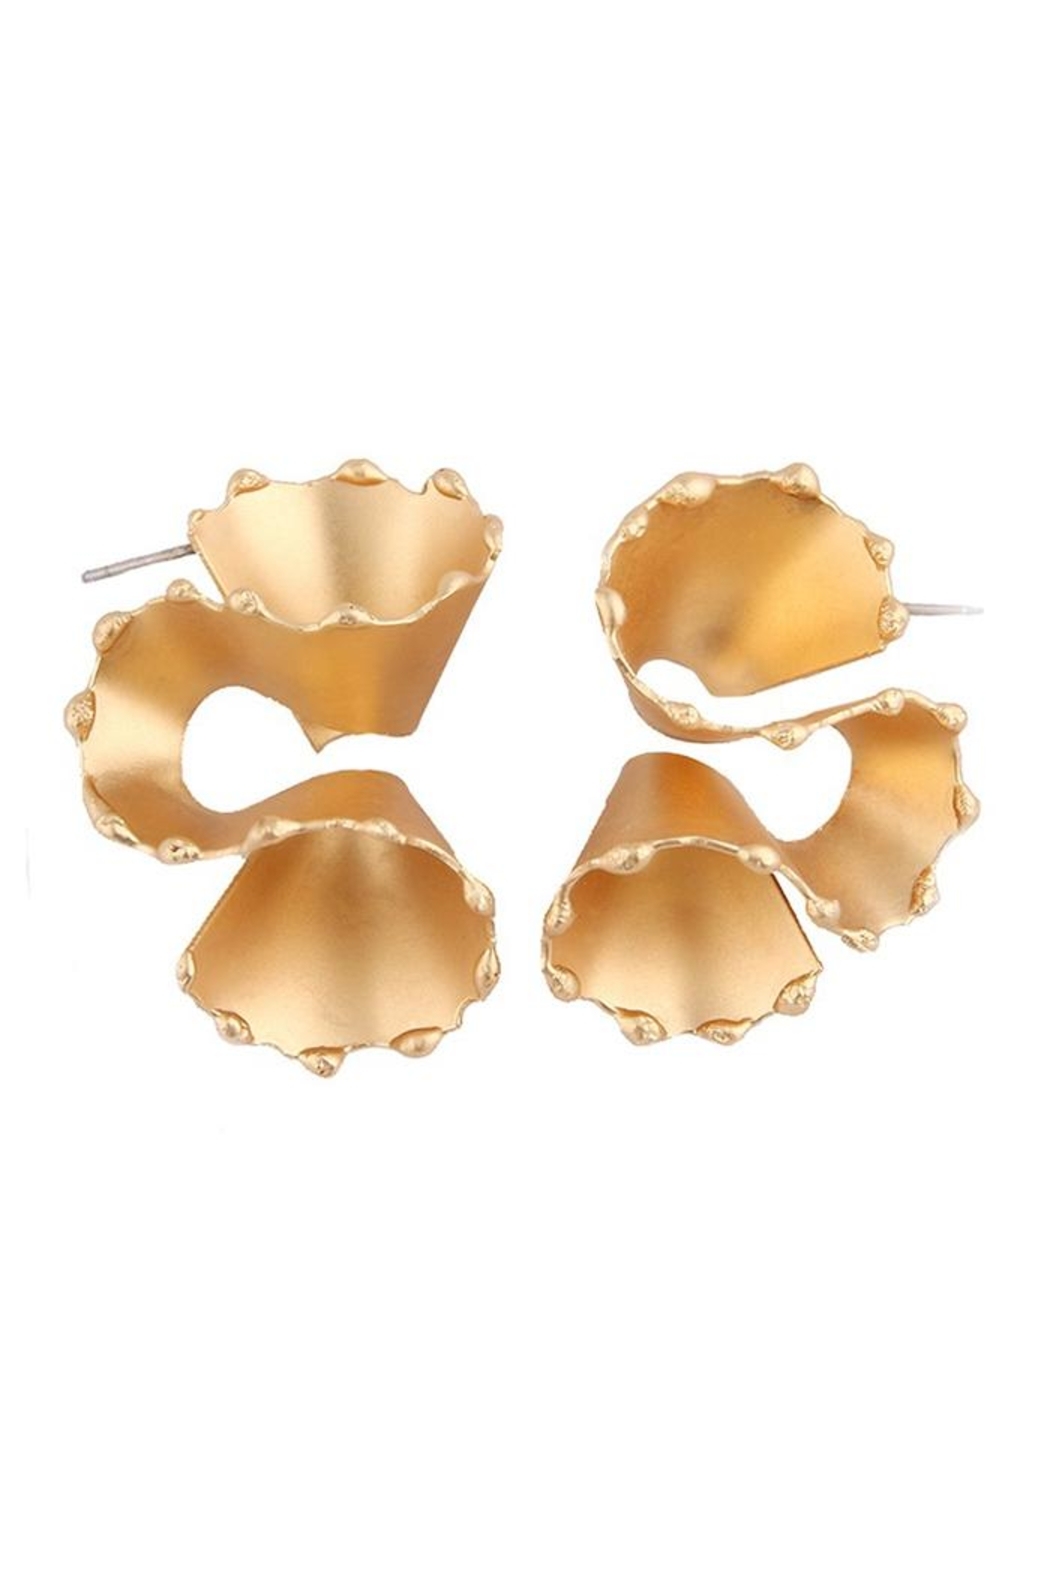 Madison Avenue Accessories Gold Swirl Earring - Main Image